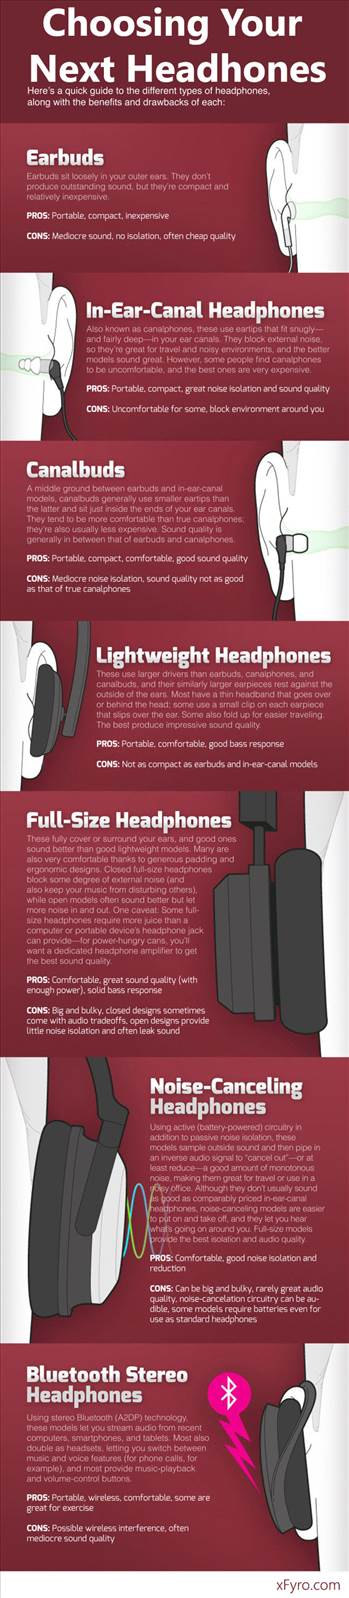 Bluetooth and Lighting Headphones.jpg by xfyro25